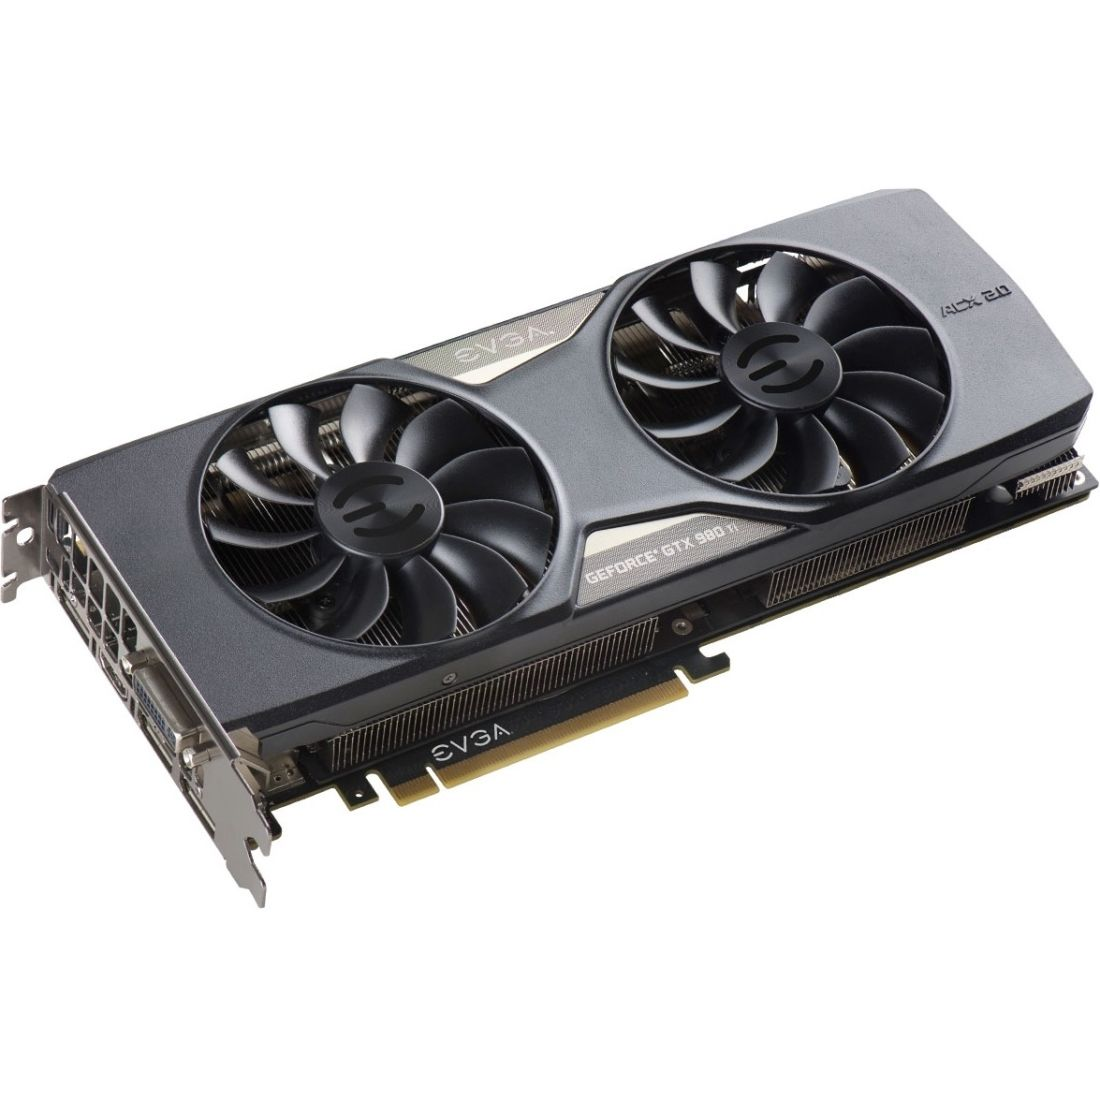 EVGA 06G-P4-4995 KR GeForce GTX 980 Ti SC+  6GB 384bit GDDR5 PCI-E 3.0 16x Graphics Card